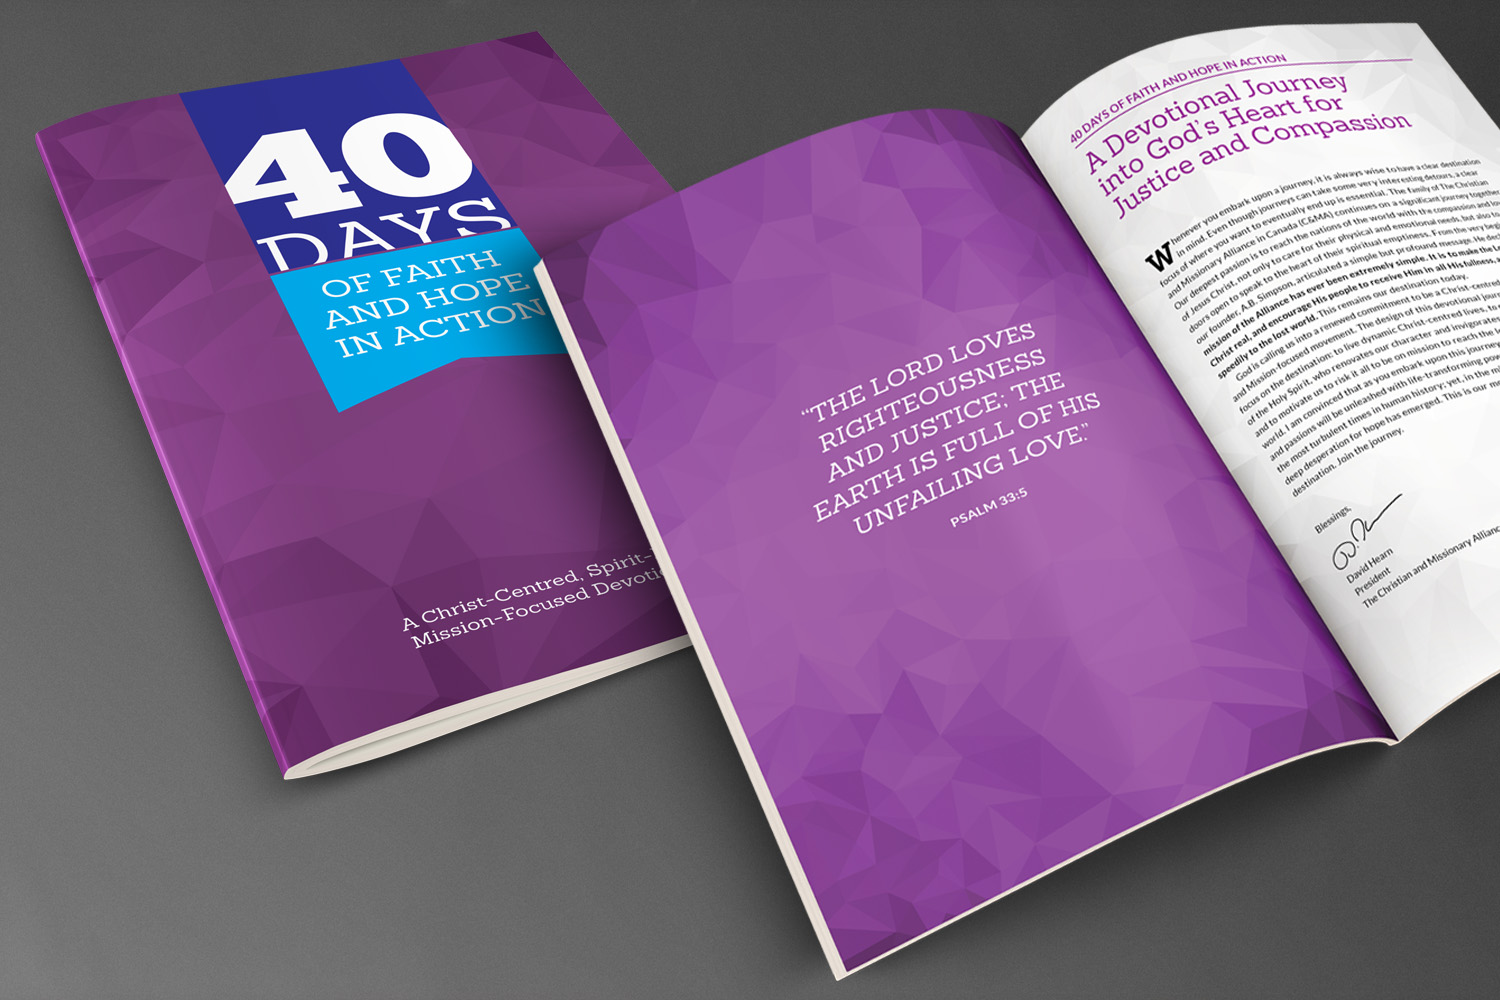 Alliance Justice and Compassion // 40 Days Devotional Booklet